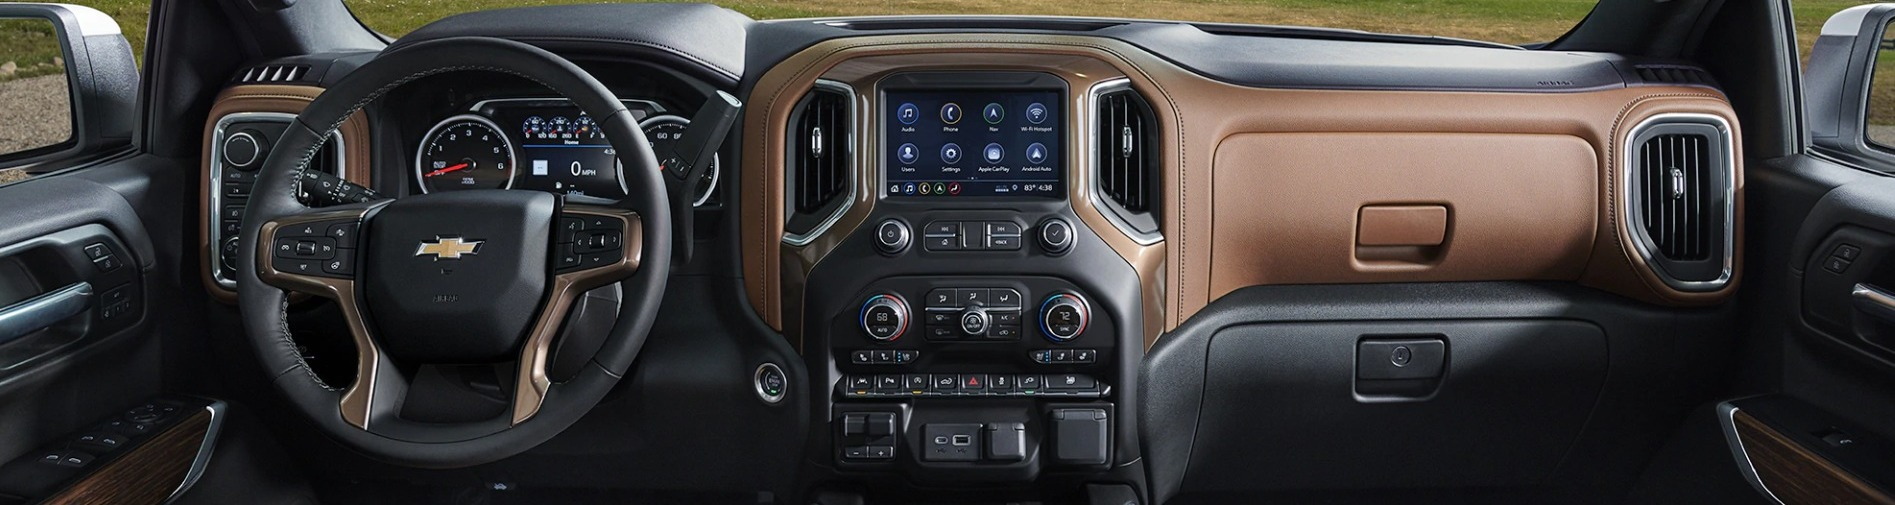 2020 Chevrolet Silverado 1500 Dashboard